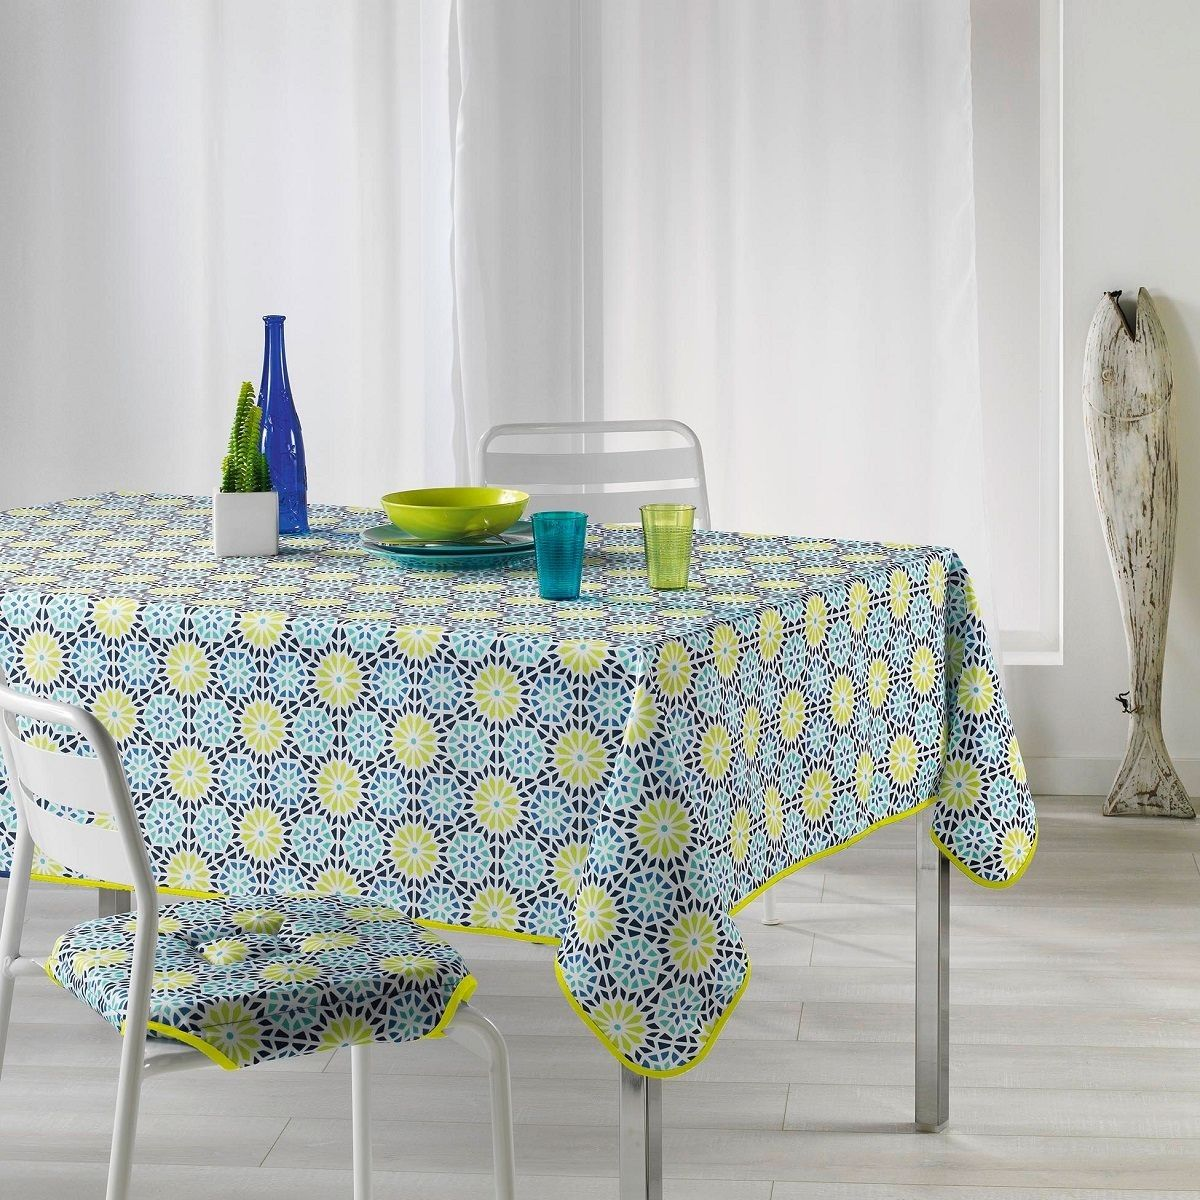 Nappe Rectangulaire 150 X 240 Cm Kaleida Anis Taille 150x240 Cm Nappe Nappe Ronde